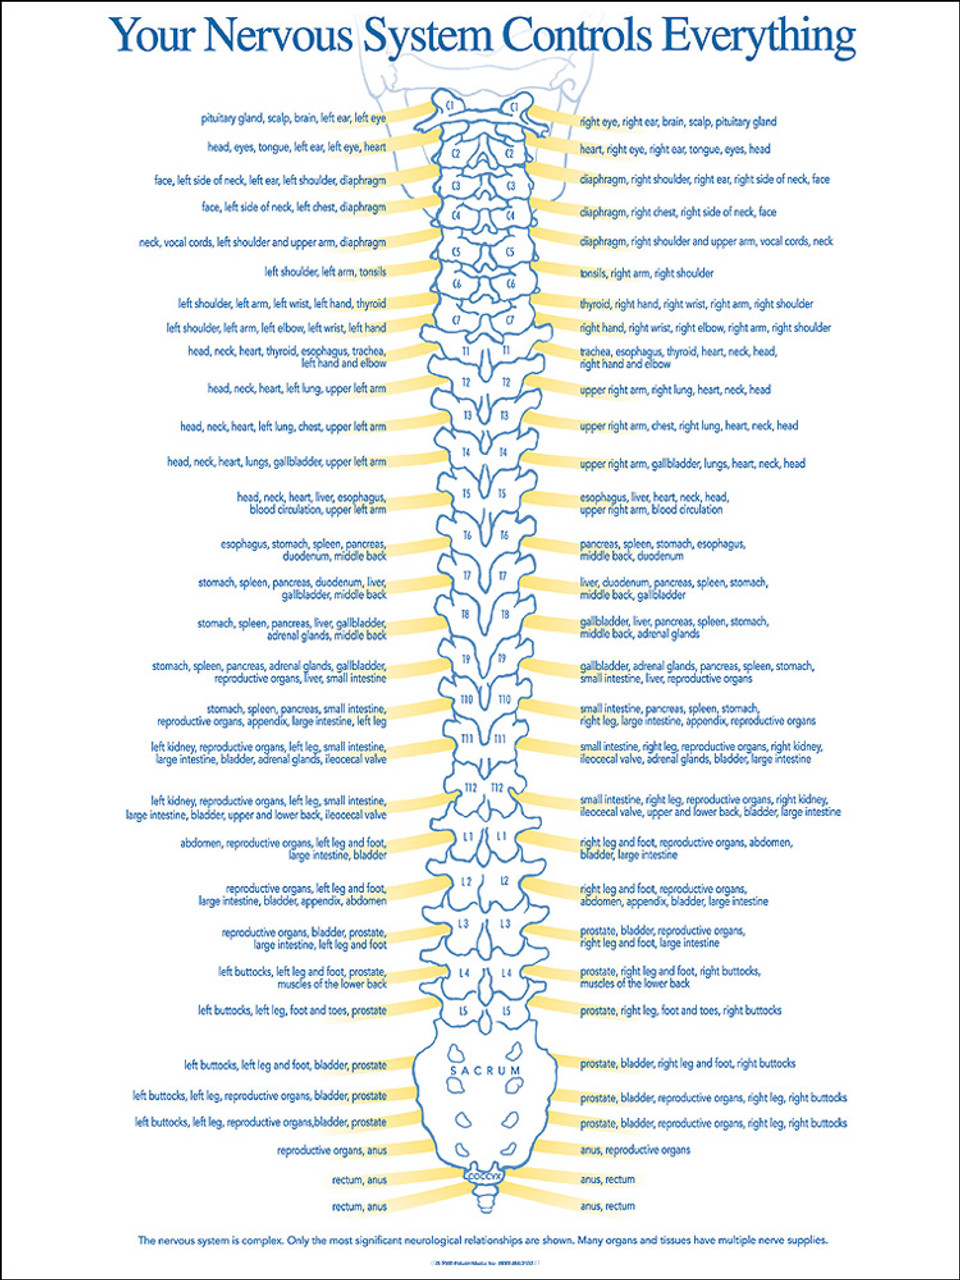 Chiropractic spinal nerve chart nerve function chart